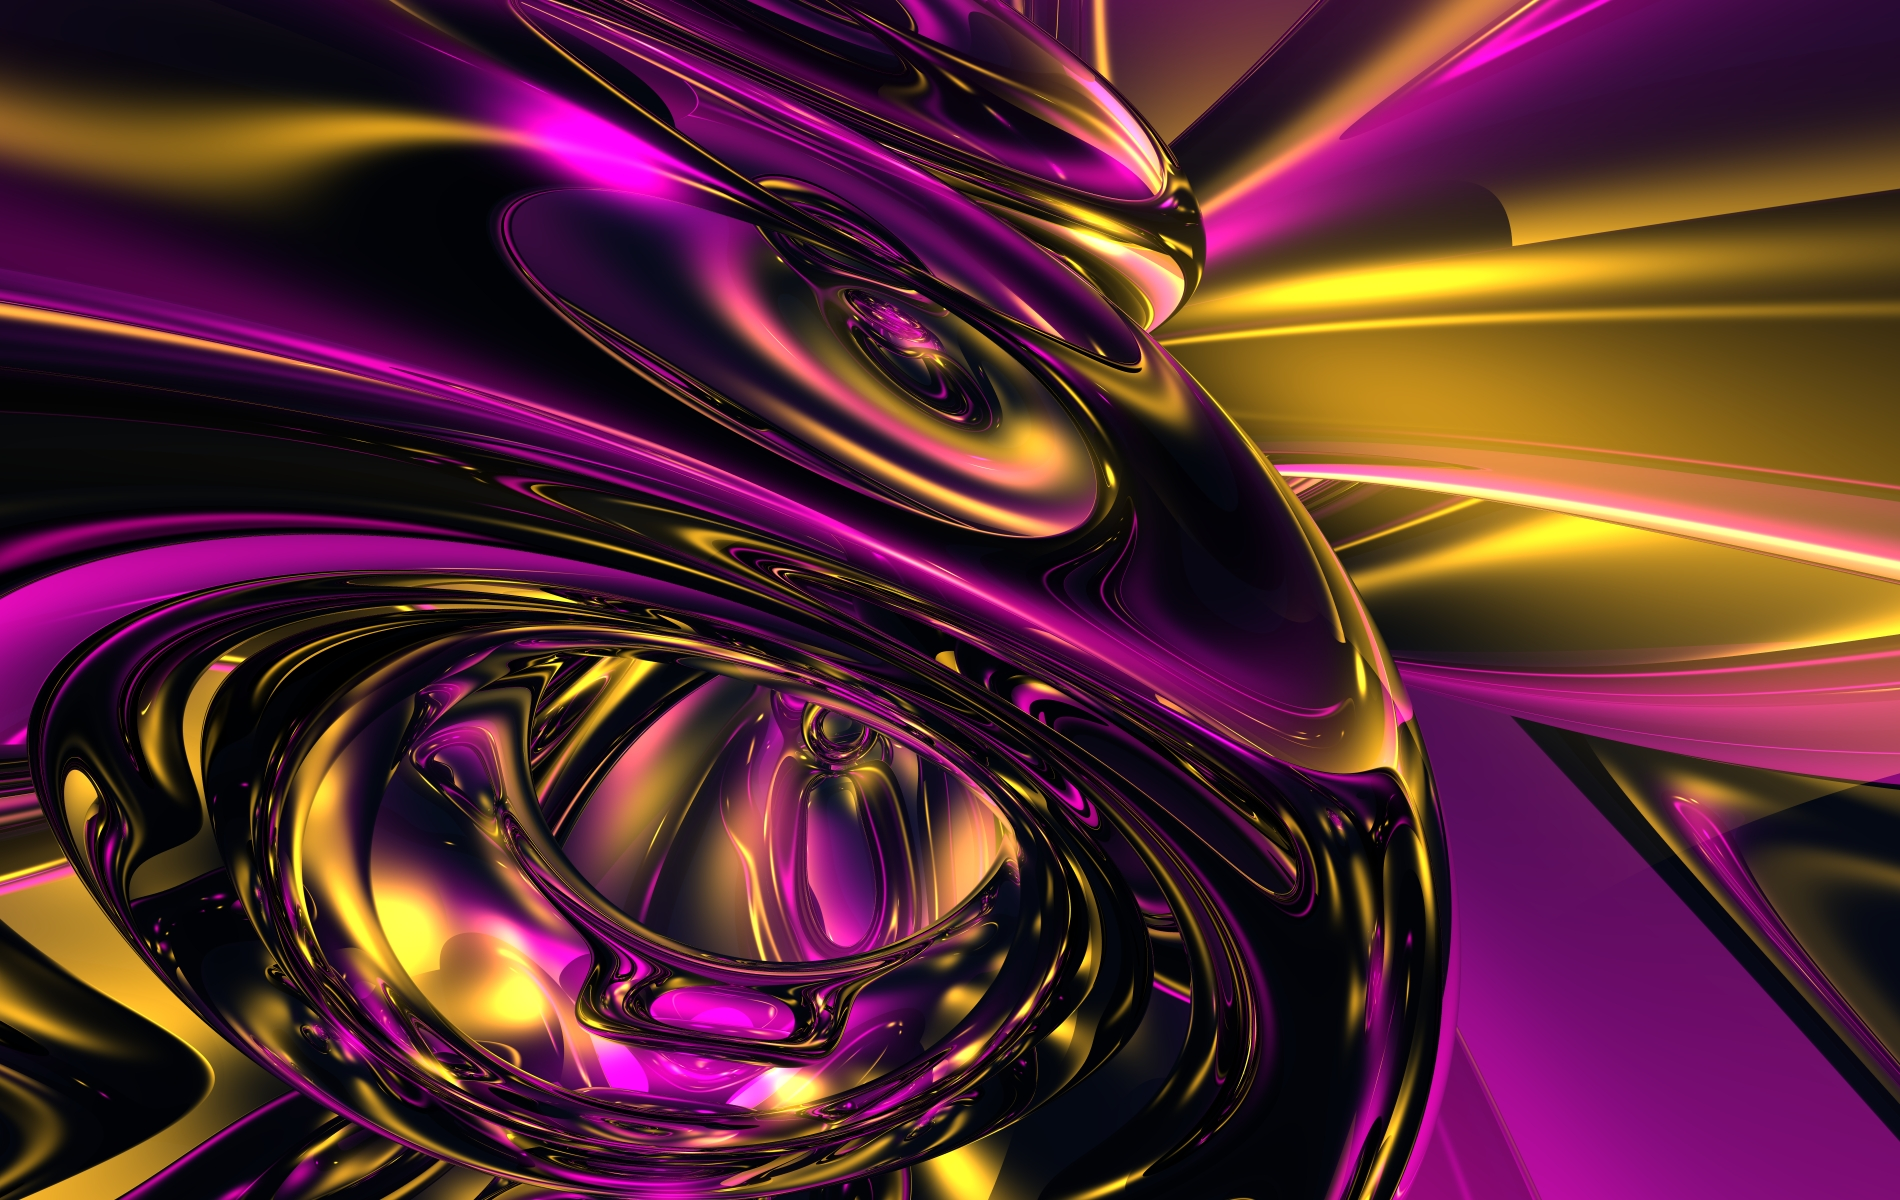 Amazing Gold And Purple Abstract Image Picture HD ...